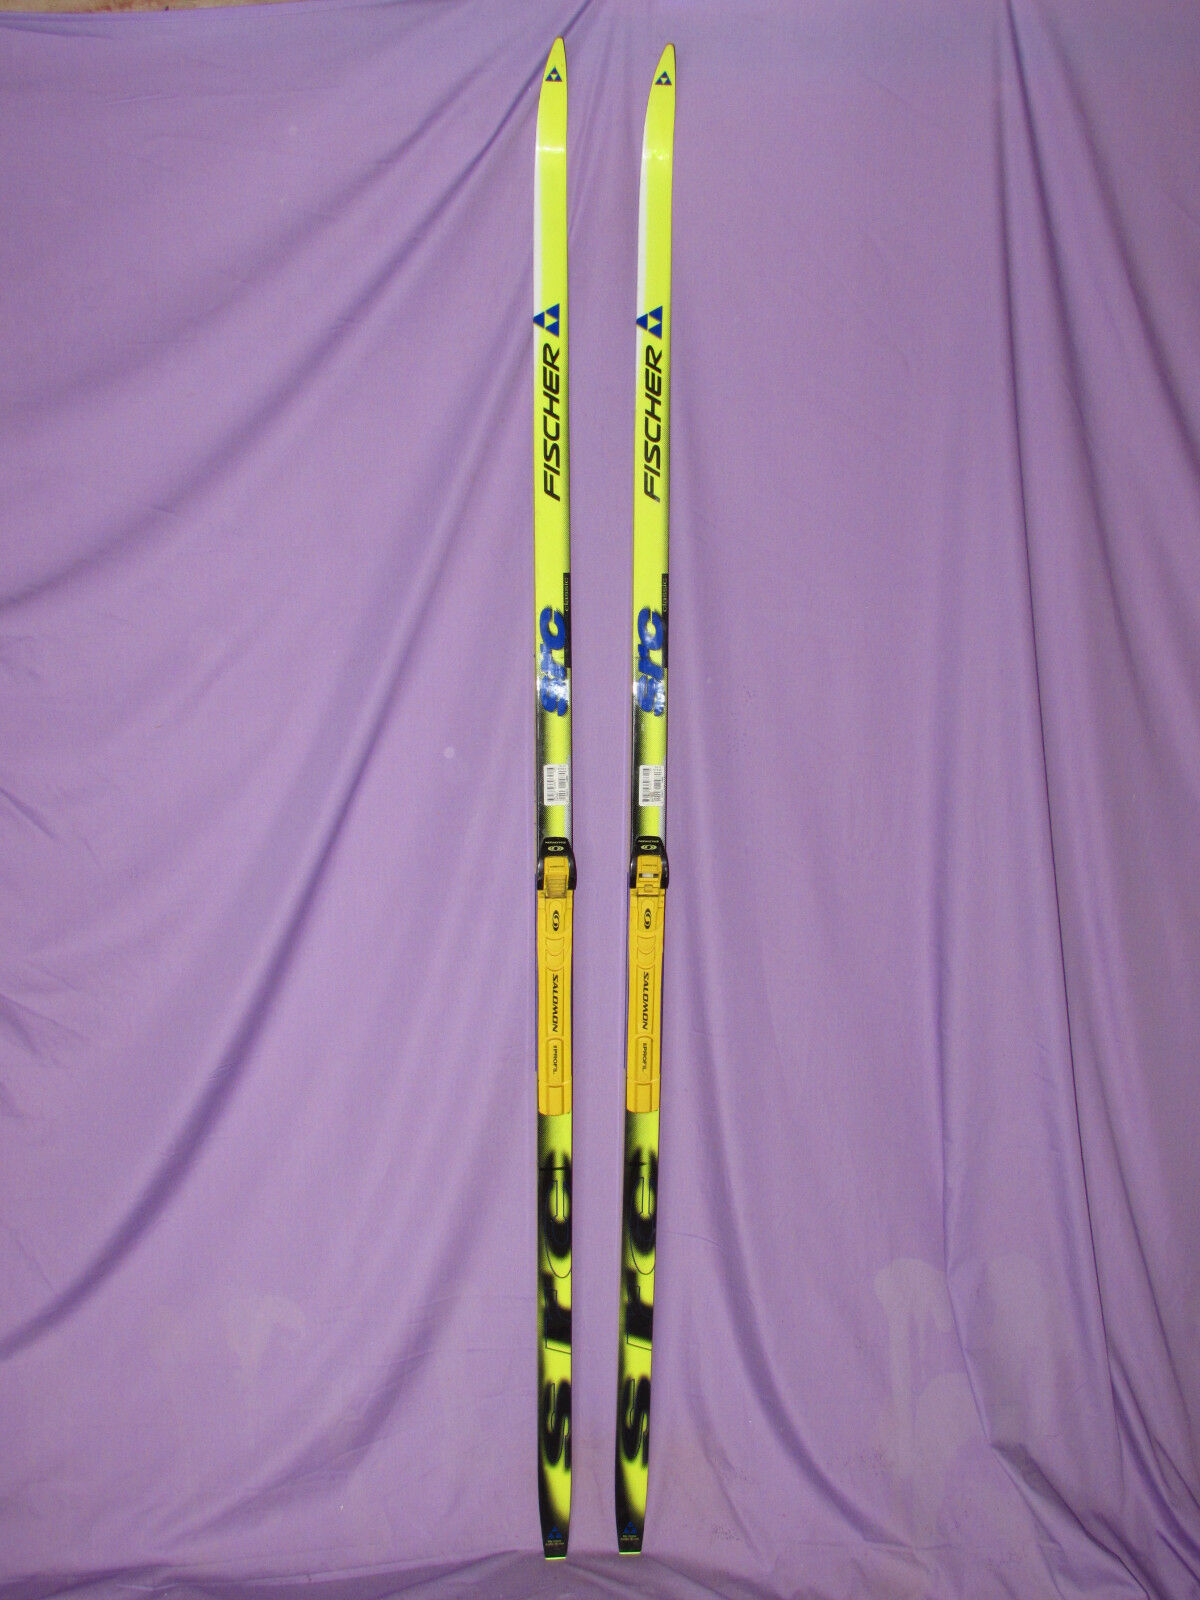 Fischer Racing SRC Classic cross  country skis w  Salomon Profil SNS xc bindings  various sizes